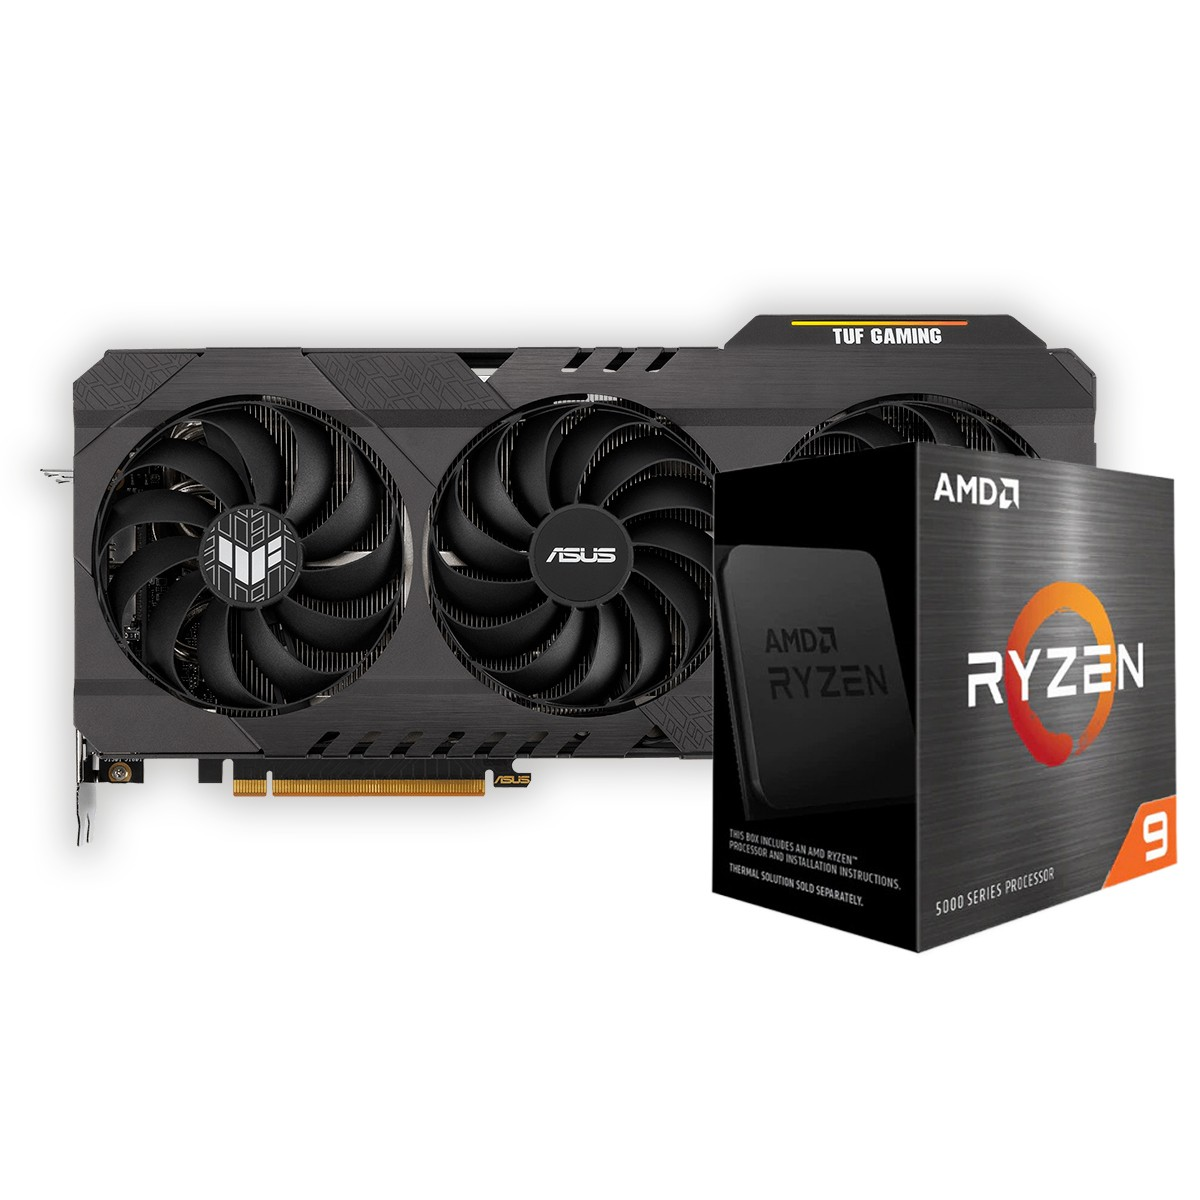 Kit Upgrade ASUS TUF Gaming Radeon RX 6700 XT OC + AMD Ryzen 9 5950X